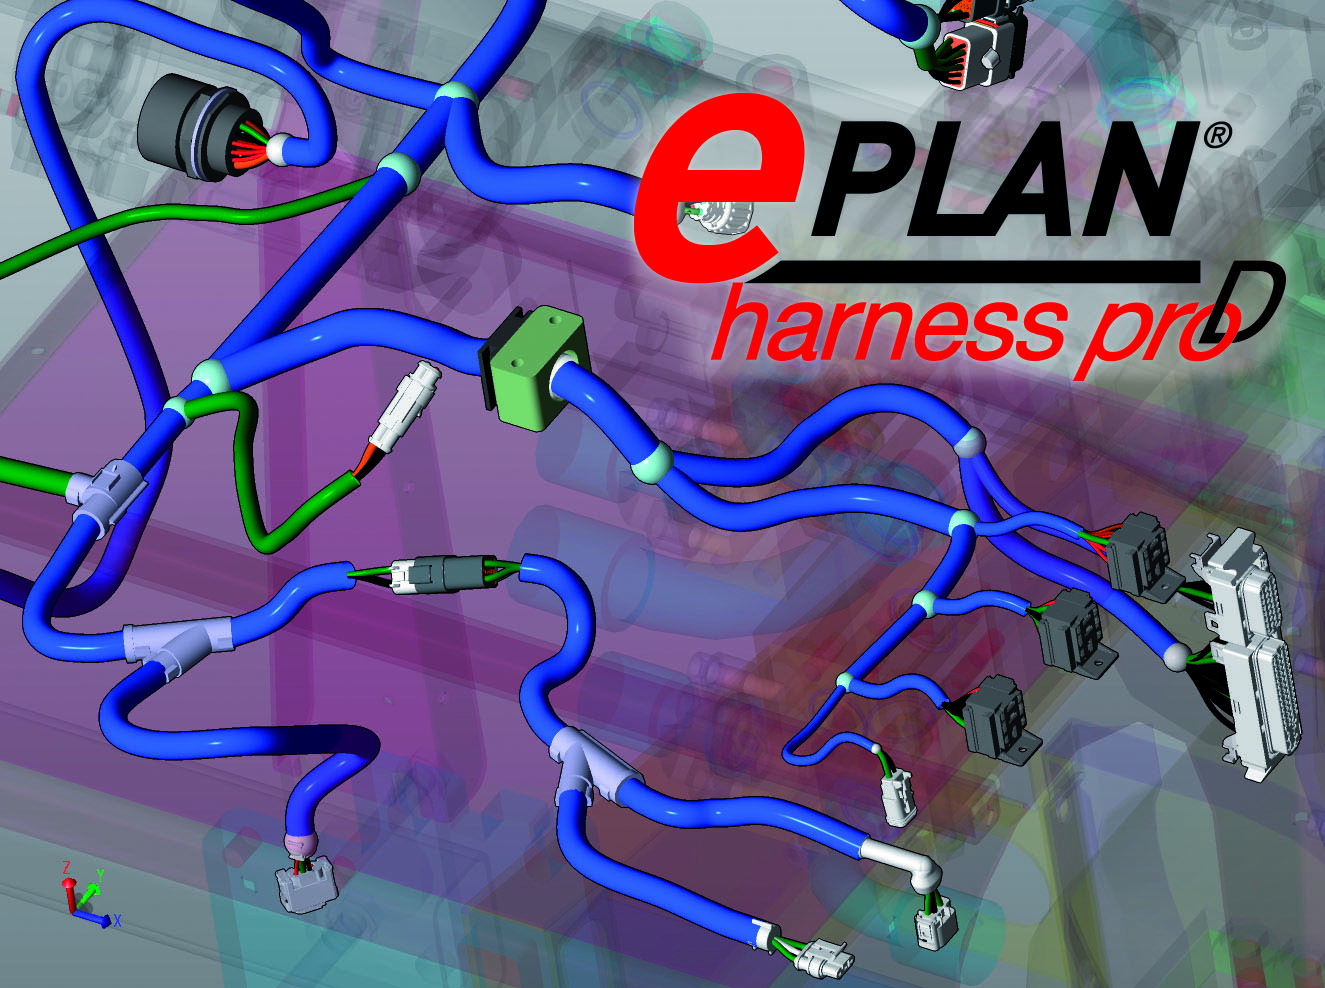 EPLAN harness pro software